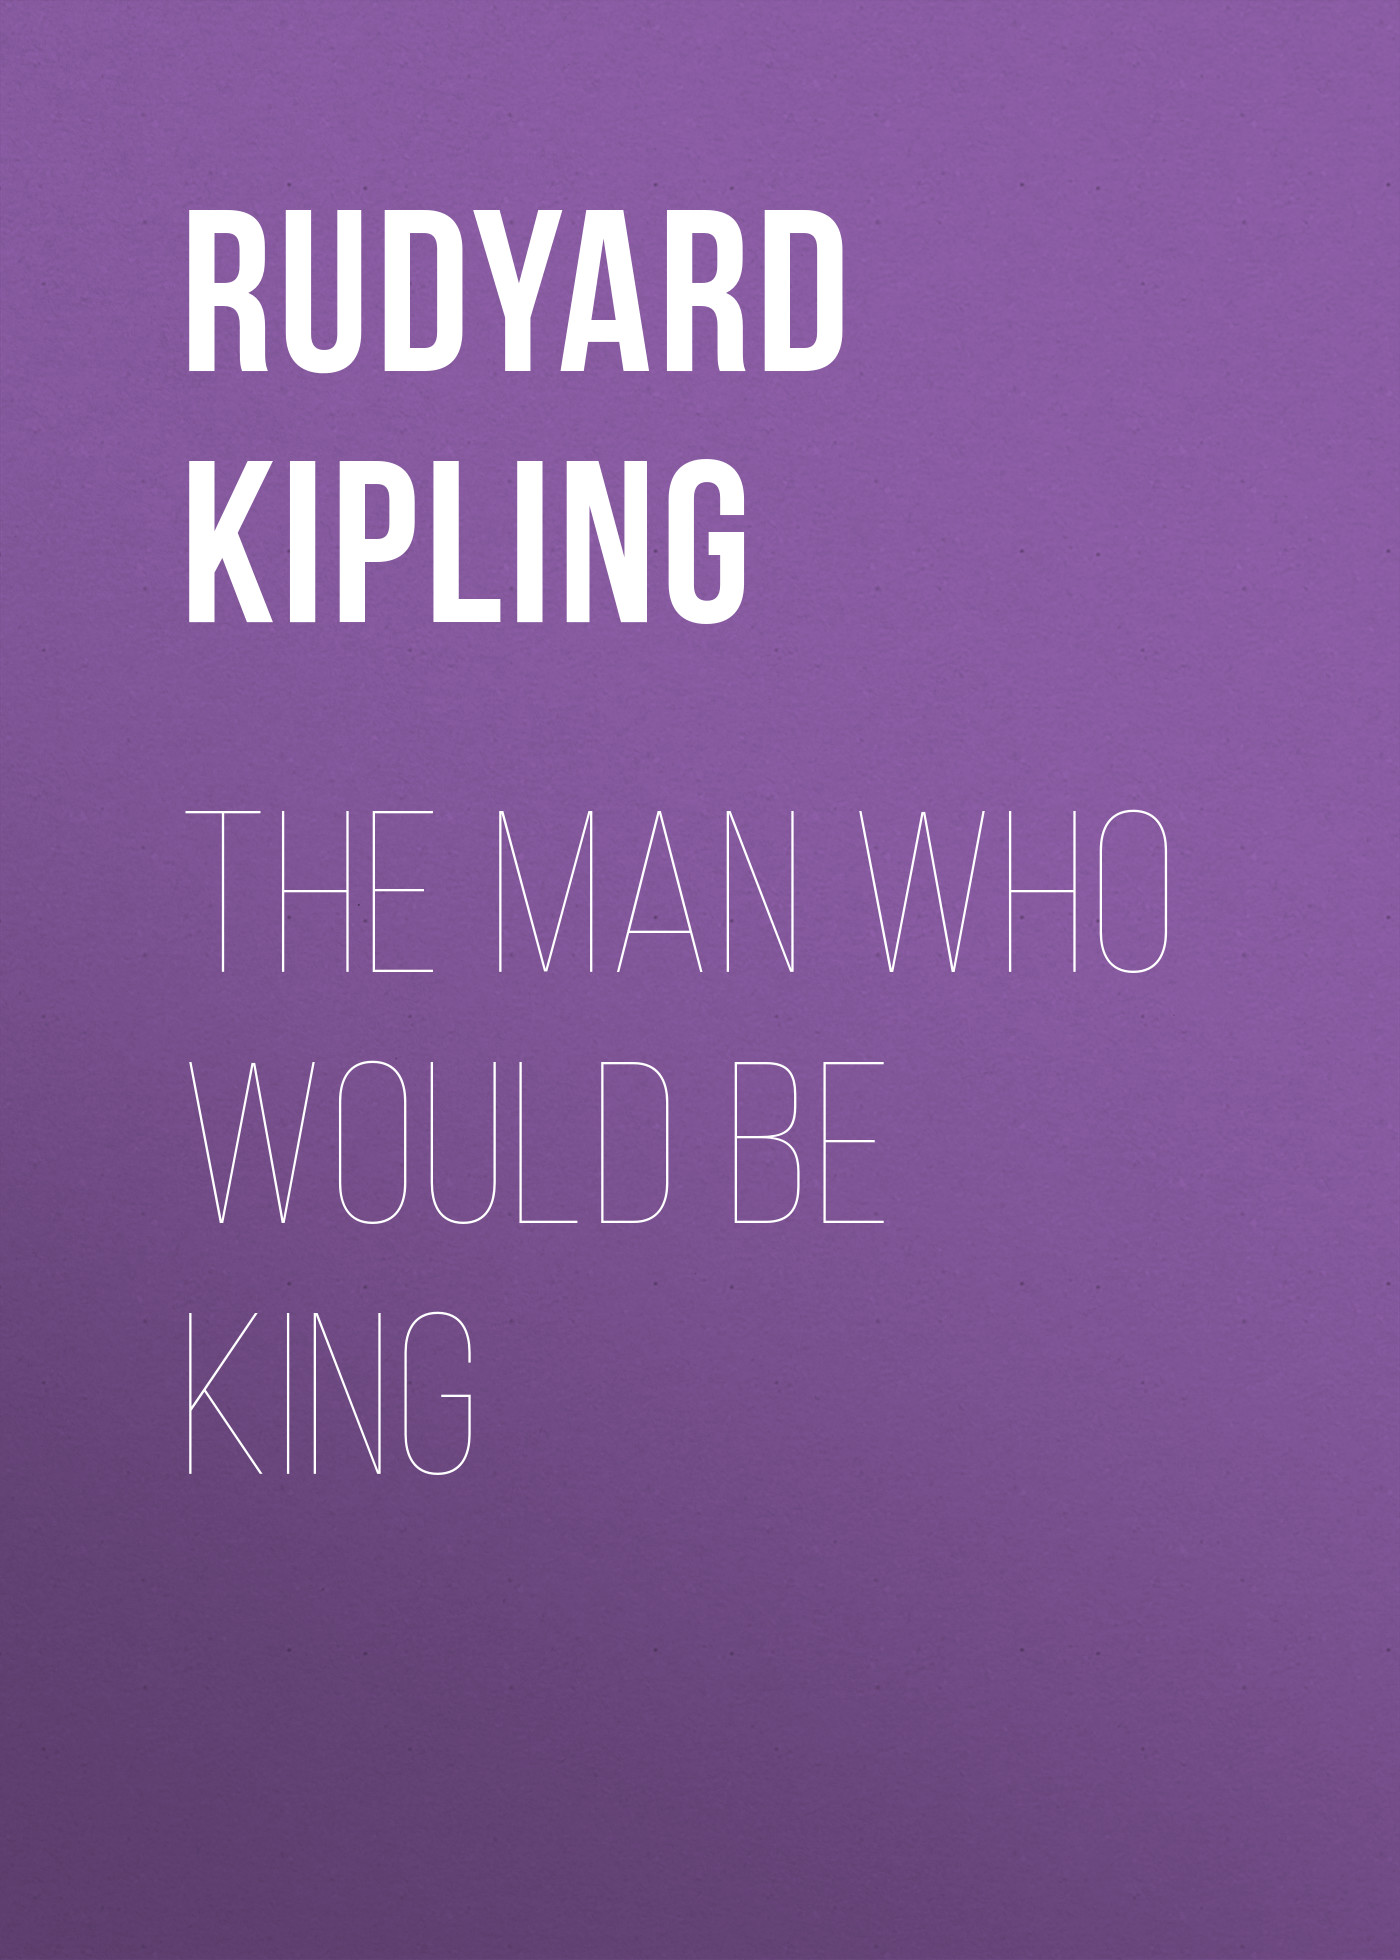 Редьярд Киплинг The Man Who Would Be King kipling r kipling the man who would be king & other stories